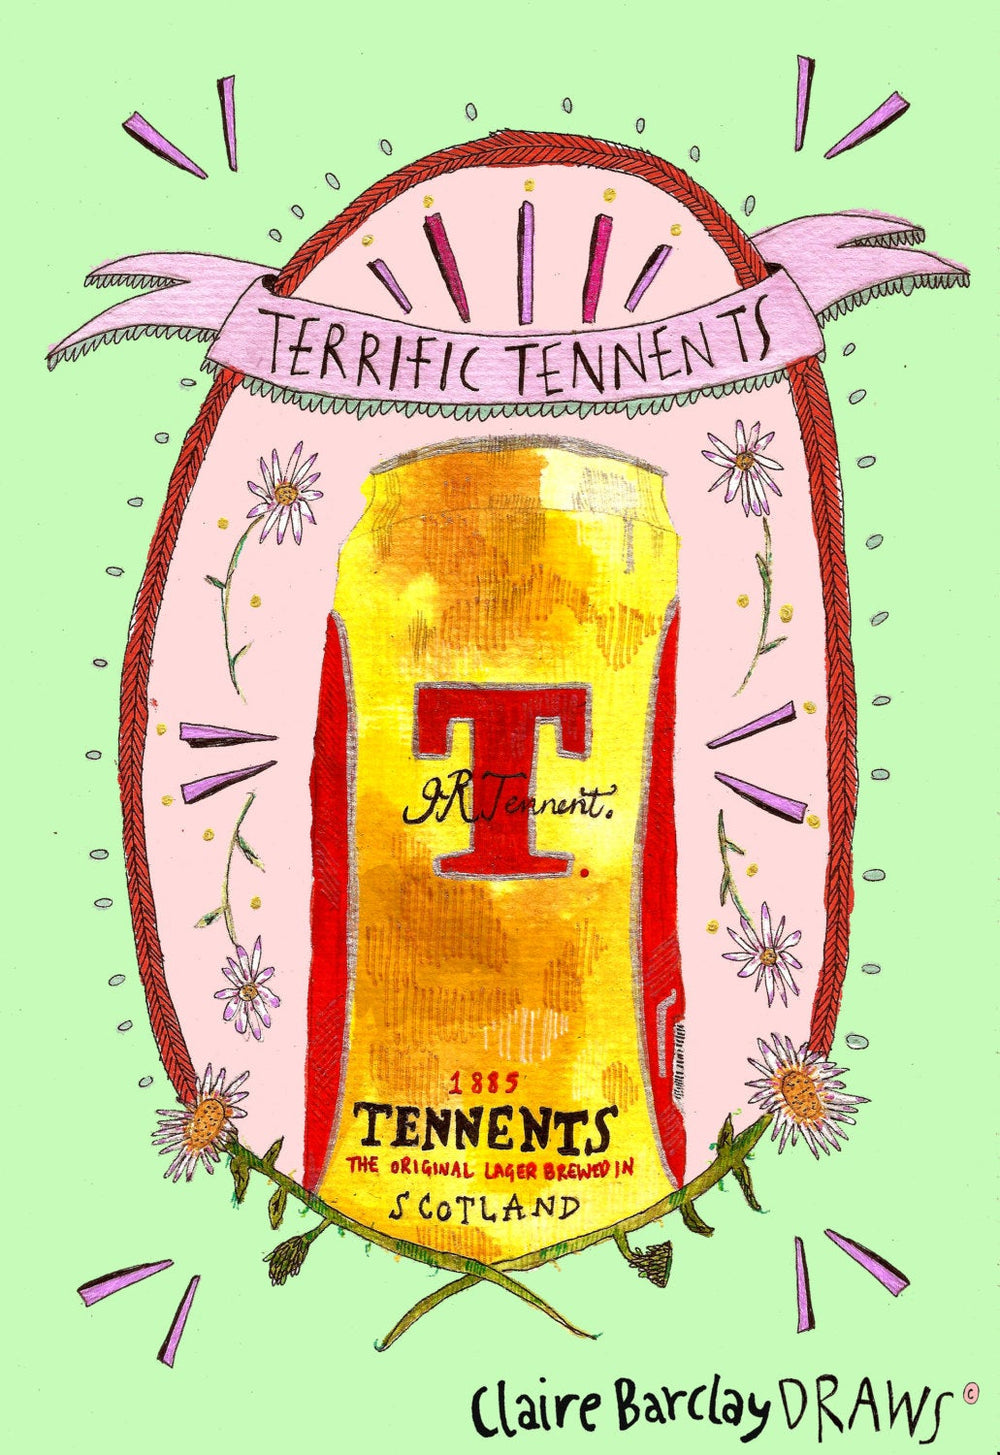 Terrific Tennents Illustration Print